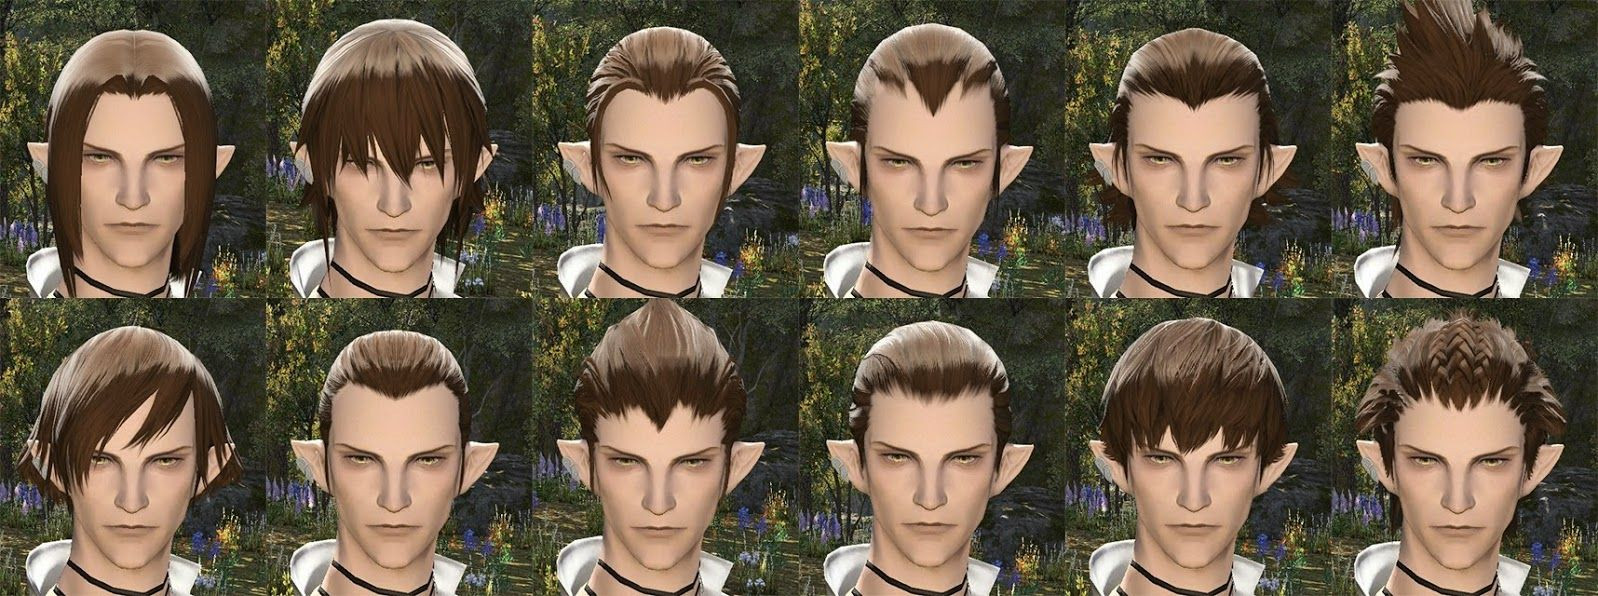 Best ideas about Ffxiv Female Hairstyles . Save or Pin Pin by sigma on Character Haire Now.